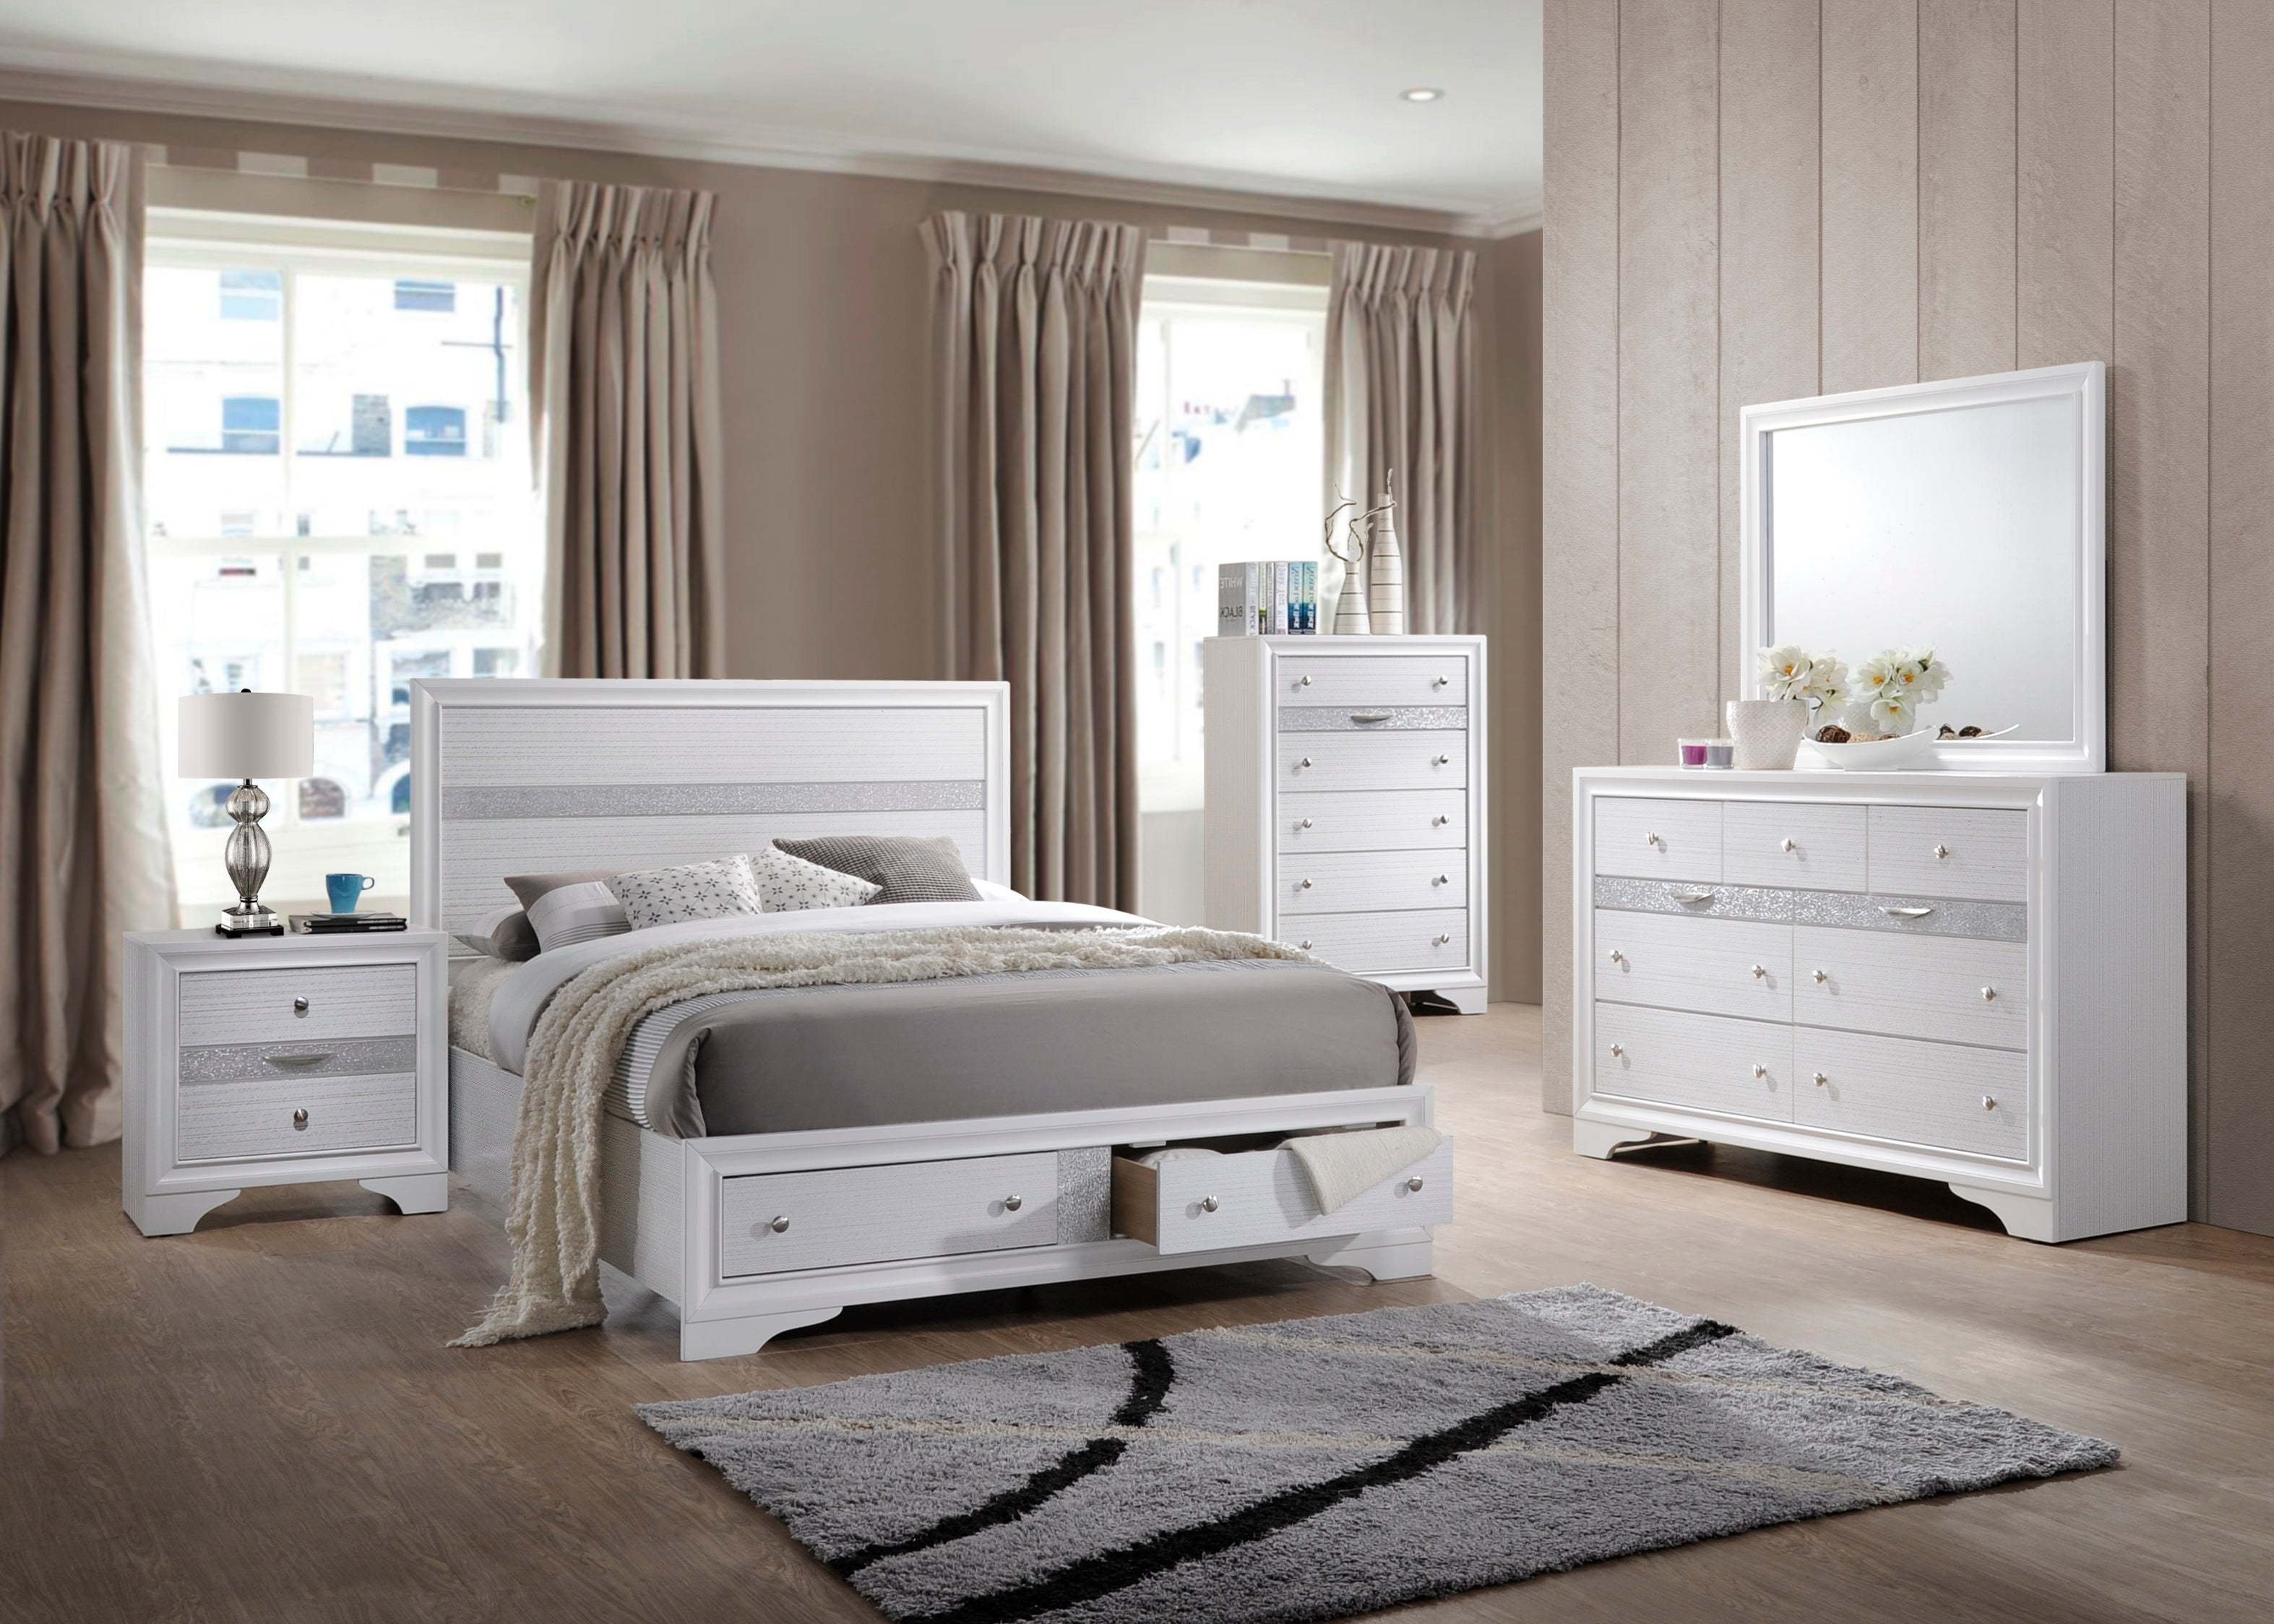 Tokyo Bedroom Collection, White Wood